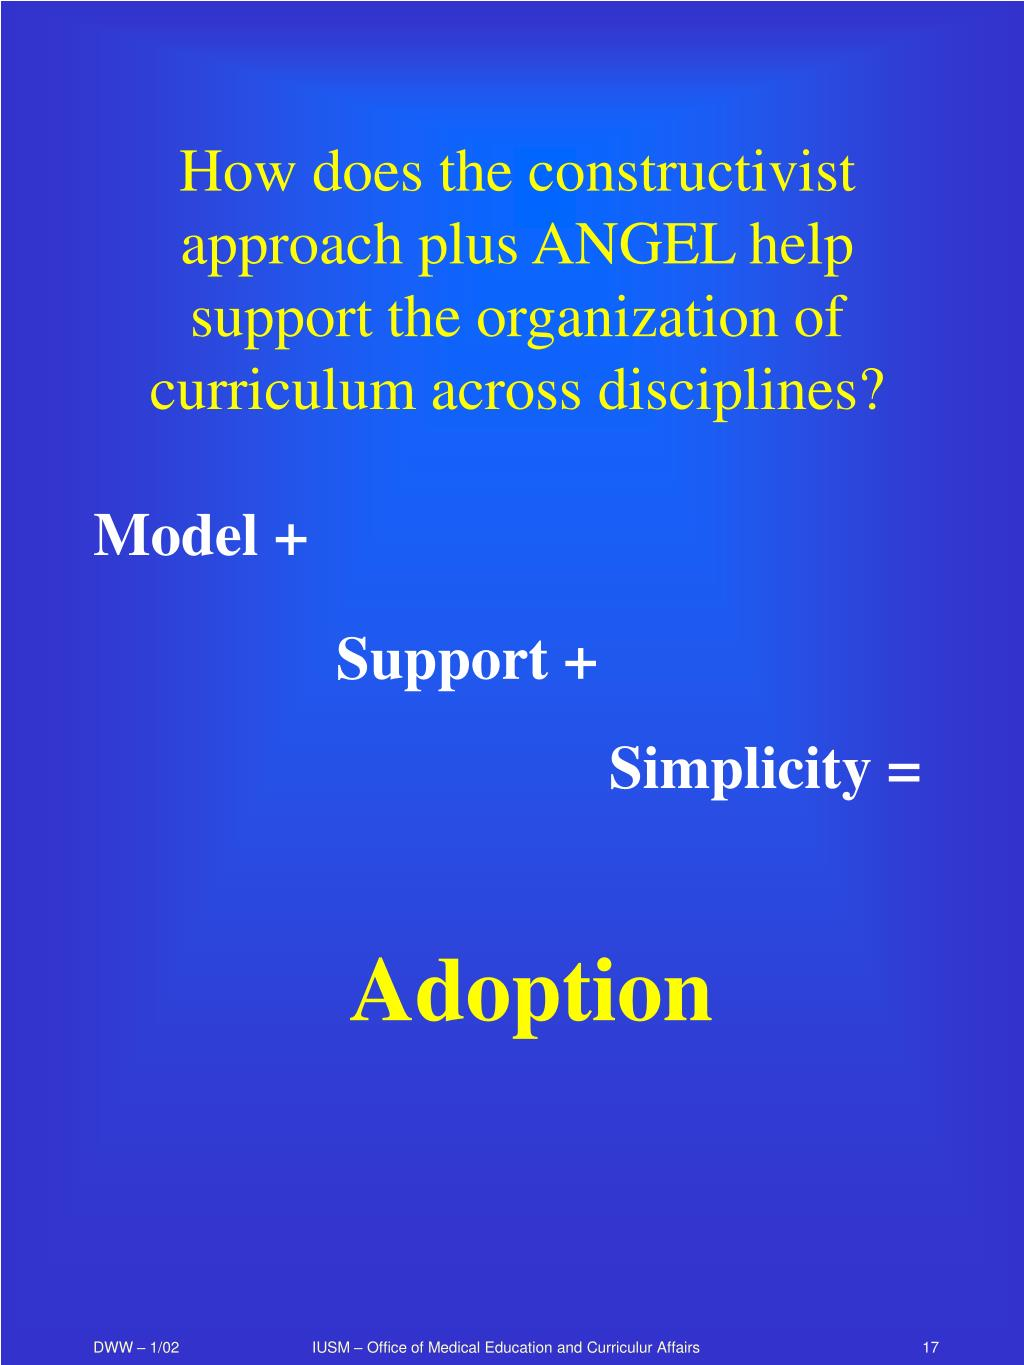 How does the constructivist approach plus ANGEL help support the organization of curriculum across disciplines?